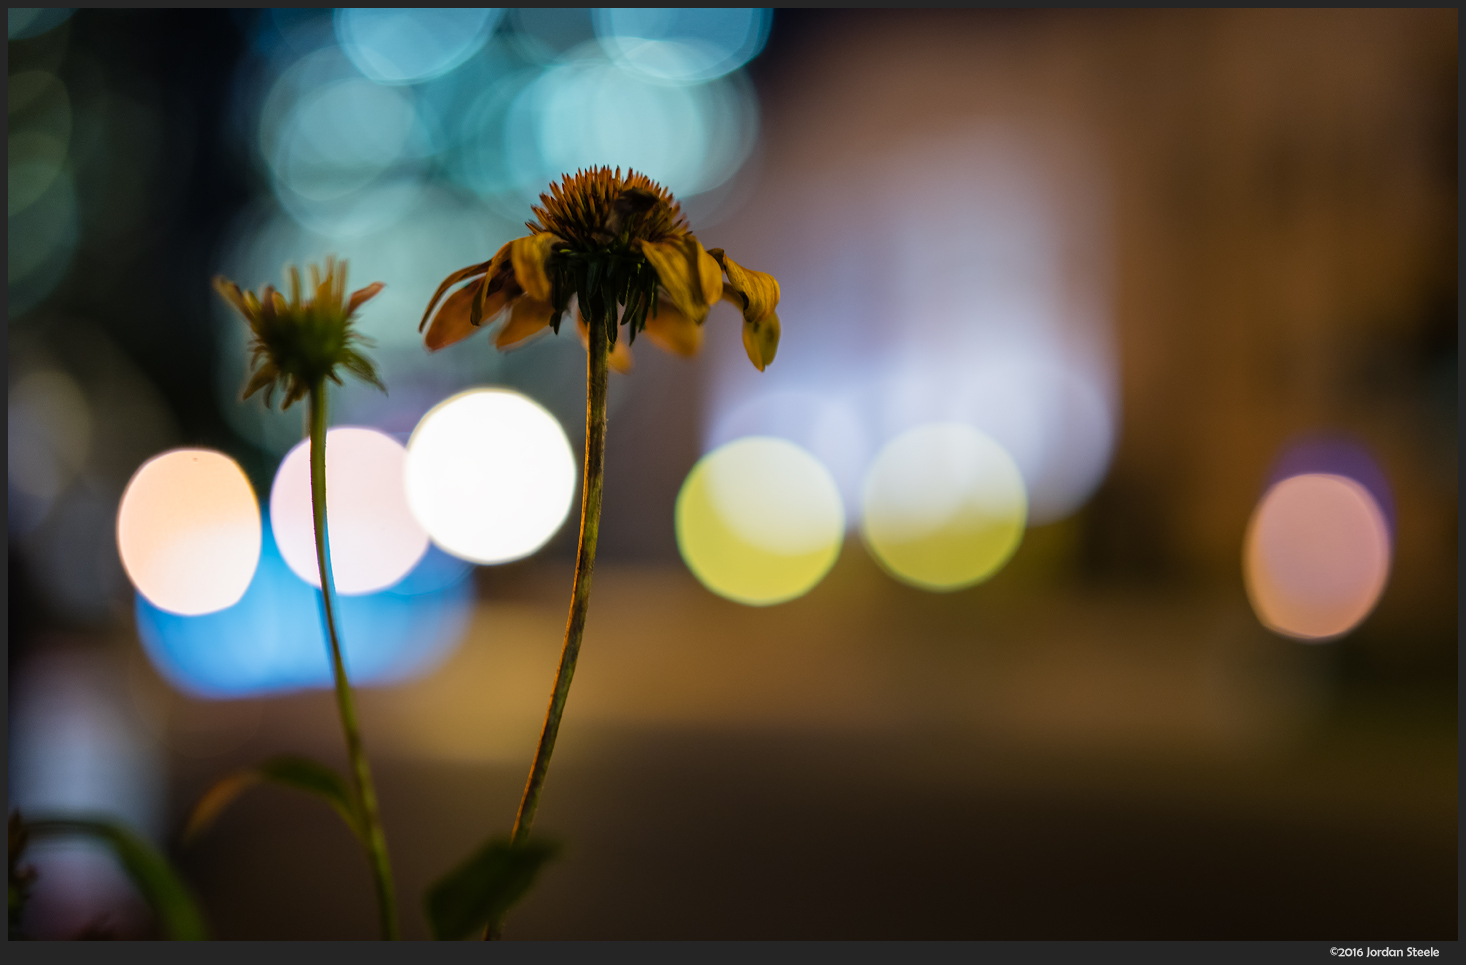 Coneflowers at Night - Sony A7 II with Zeiss FE 50mm f/1.4 @ f/1.4